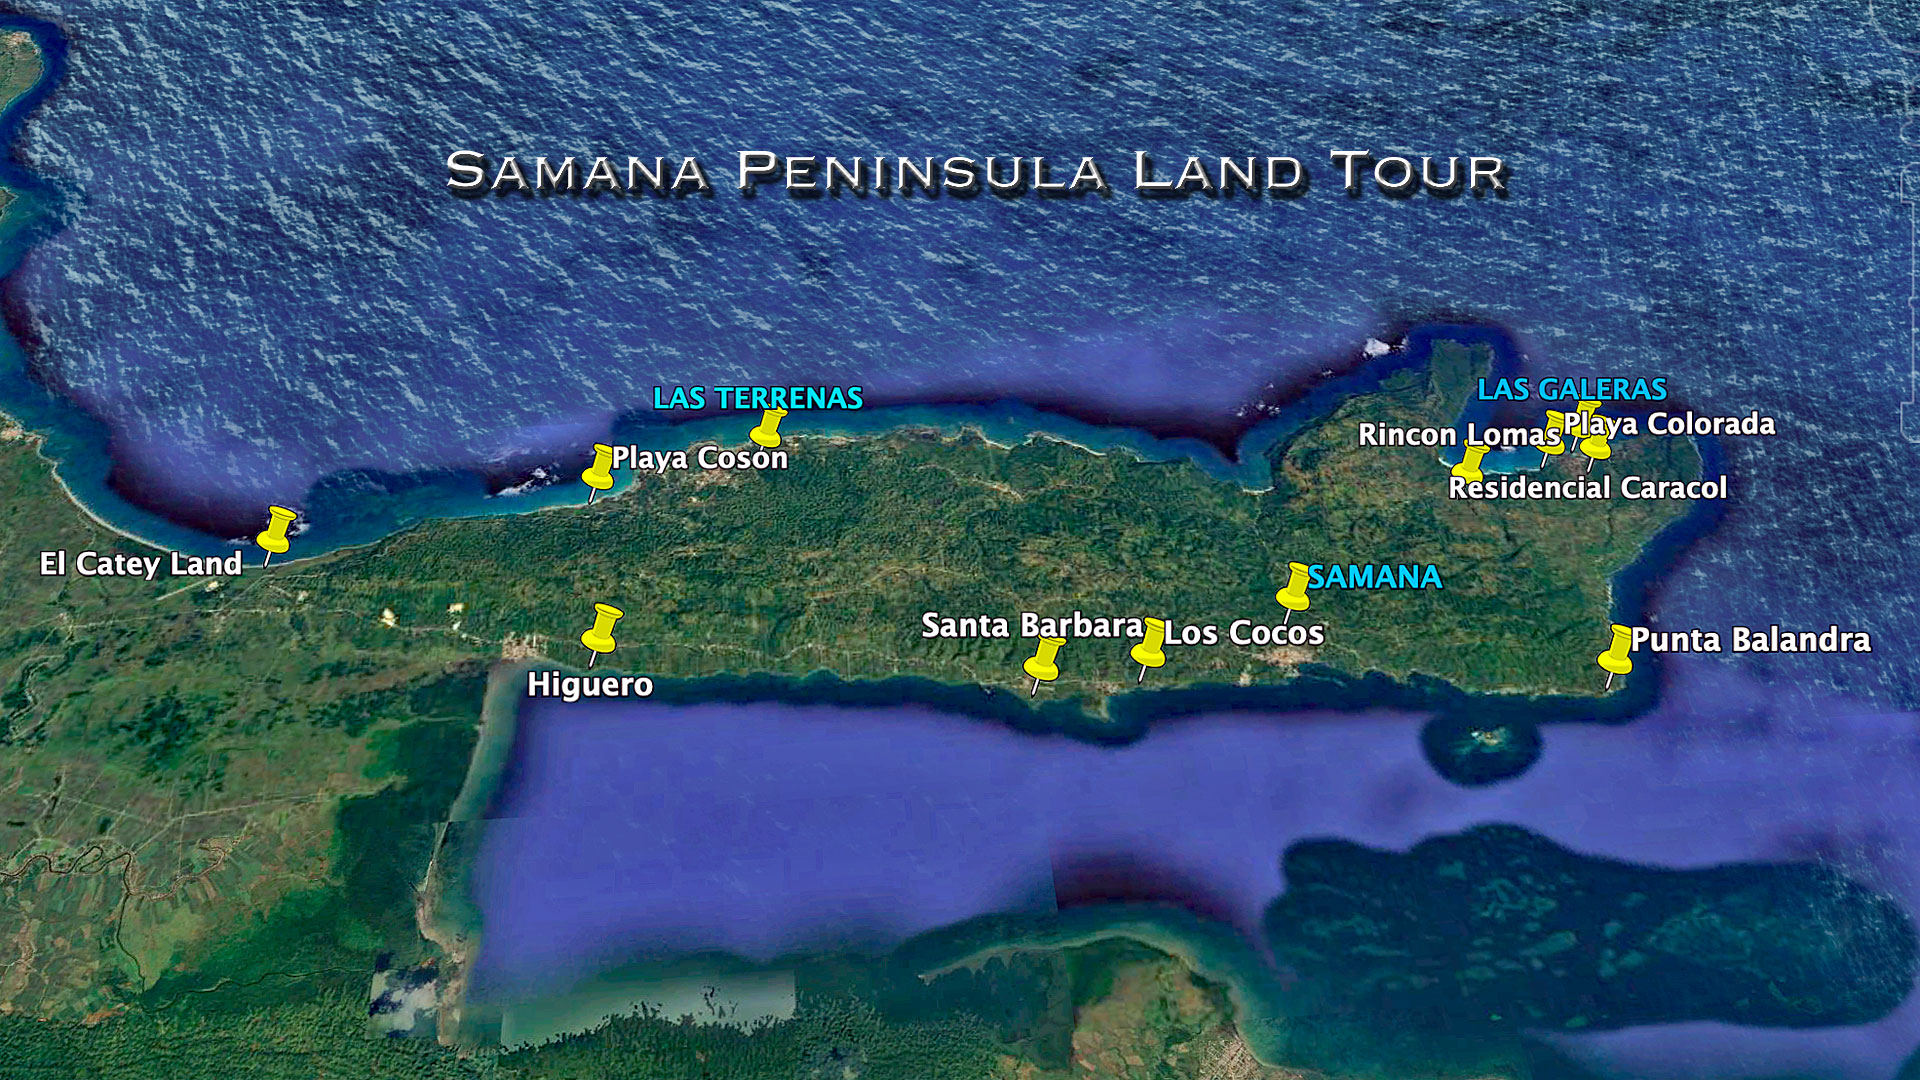 samana-peninsunla-land-tour